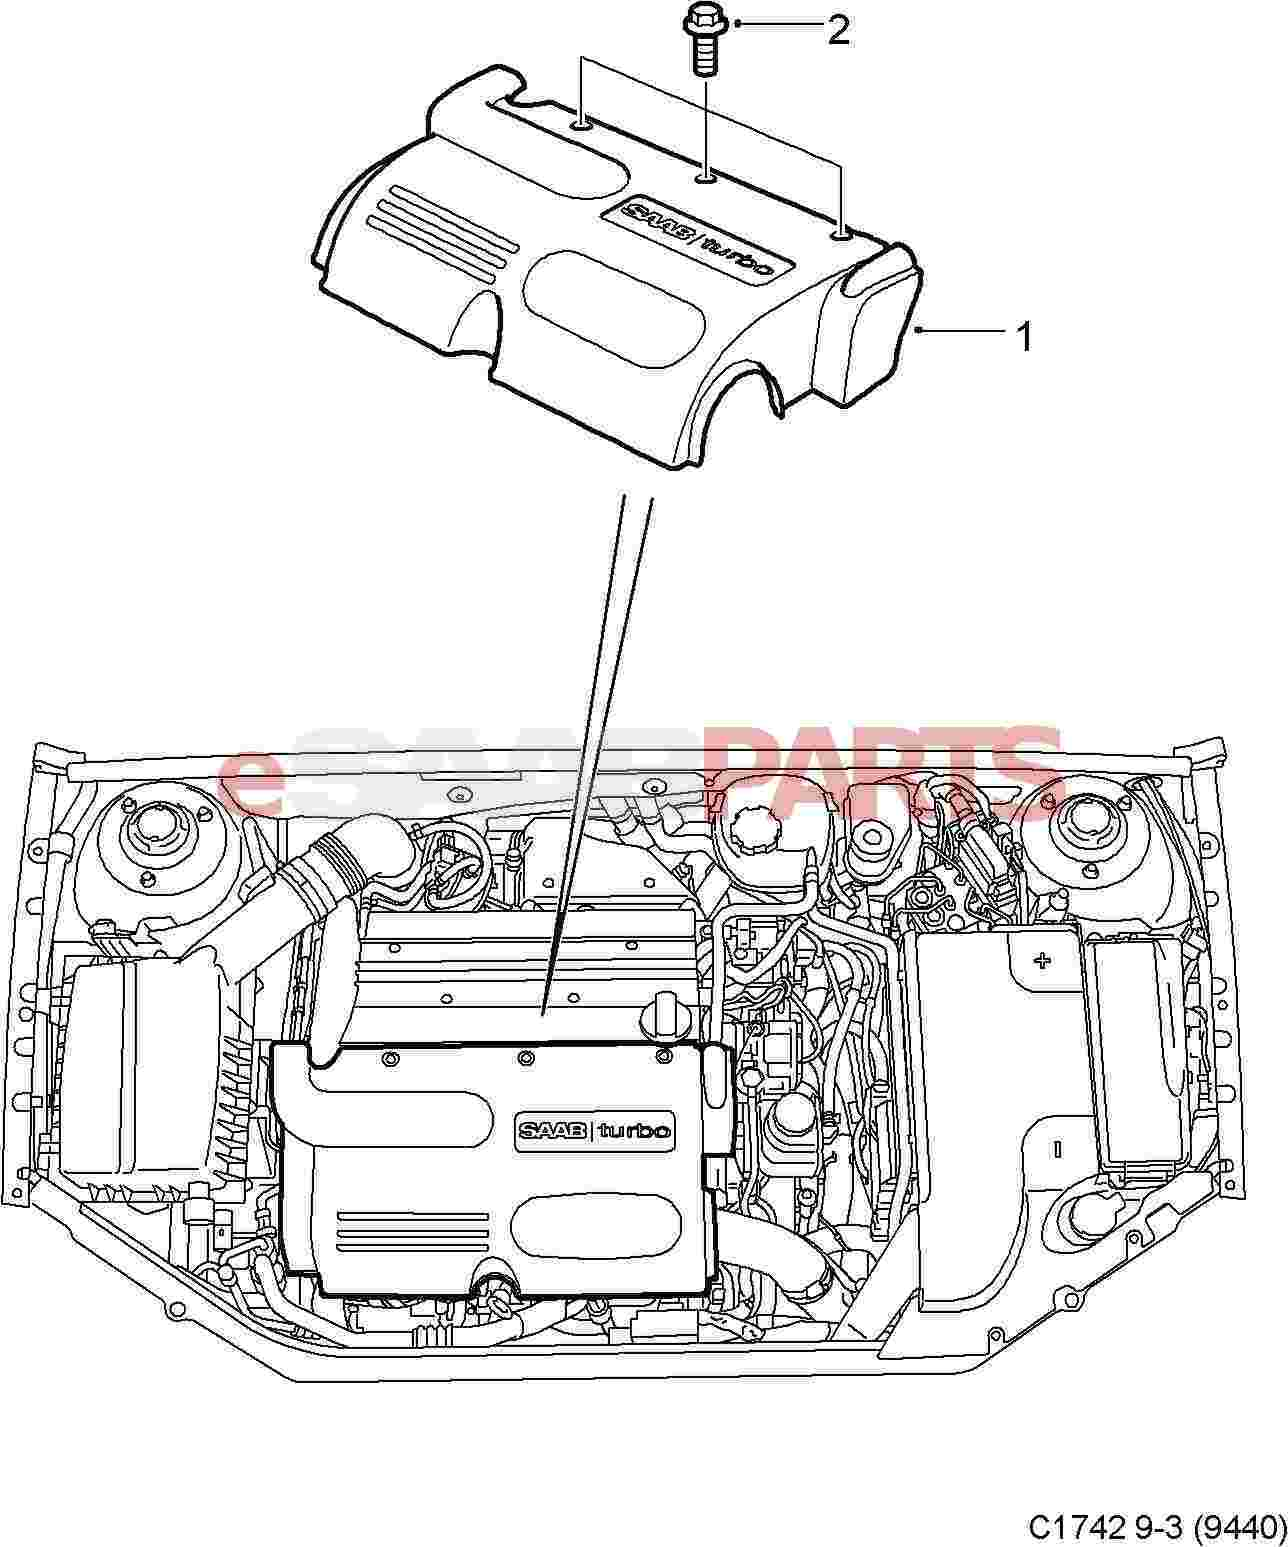 saab 9 5 engine diagram wiring junction box light 3 bay and